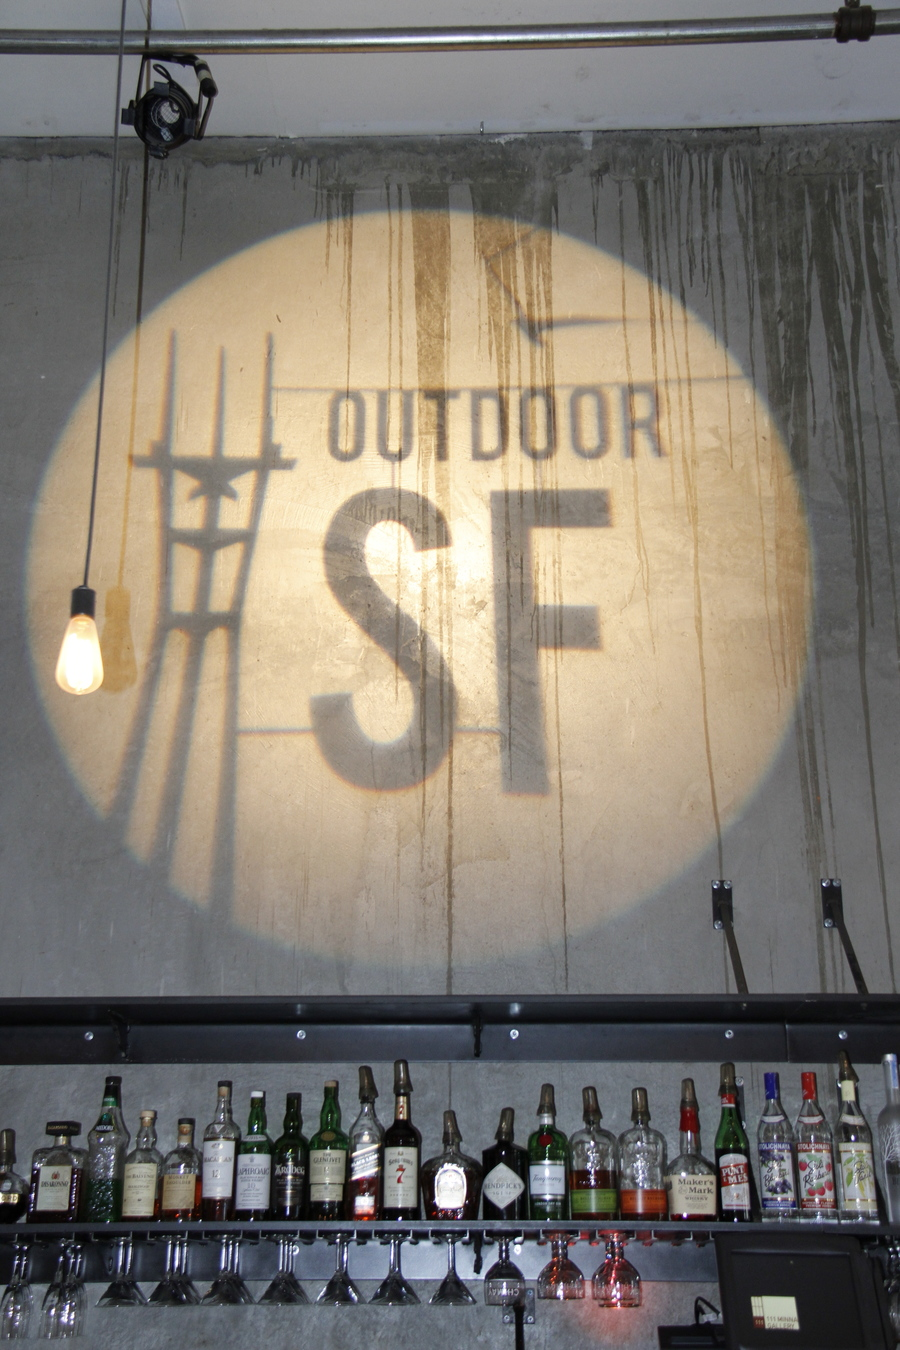 Thank You to everyone who came out last night and made the 1st Annual Outdoor San Francisco a huge success! We'd especially like to thank Ryan Seelbach and Robb Gaffney for their insightful and passionate speeches.